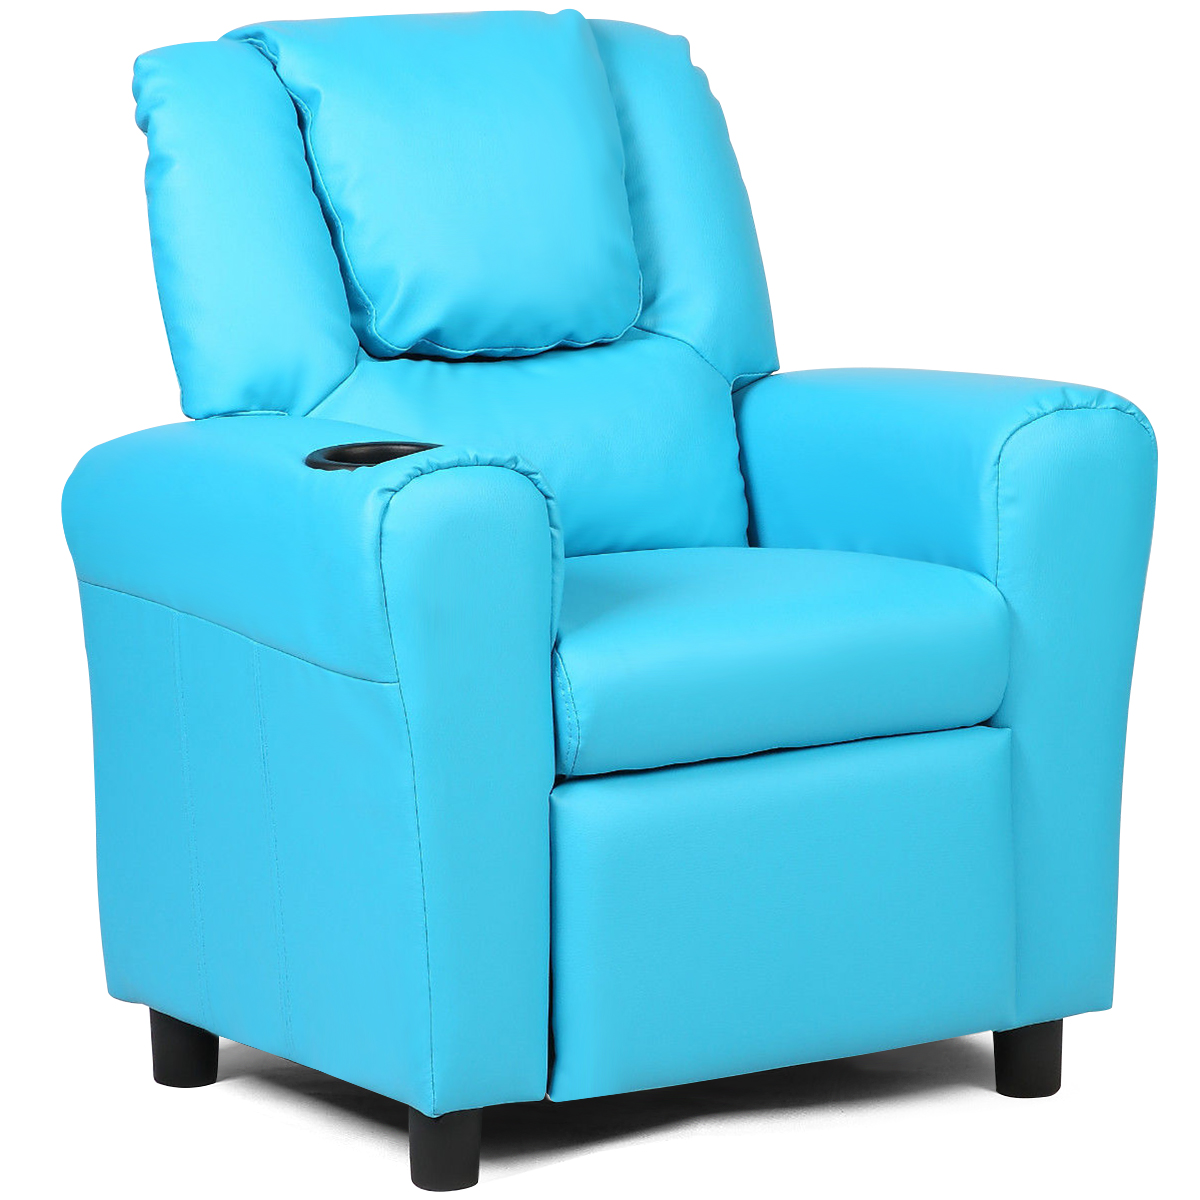 Costway Kids Recliner Armchair Children's Furniture Sofa Seat Couch Chair w Cup Holder Blue by Costway